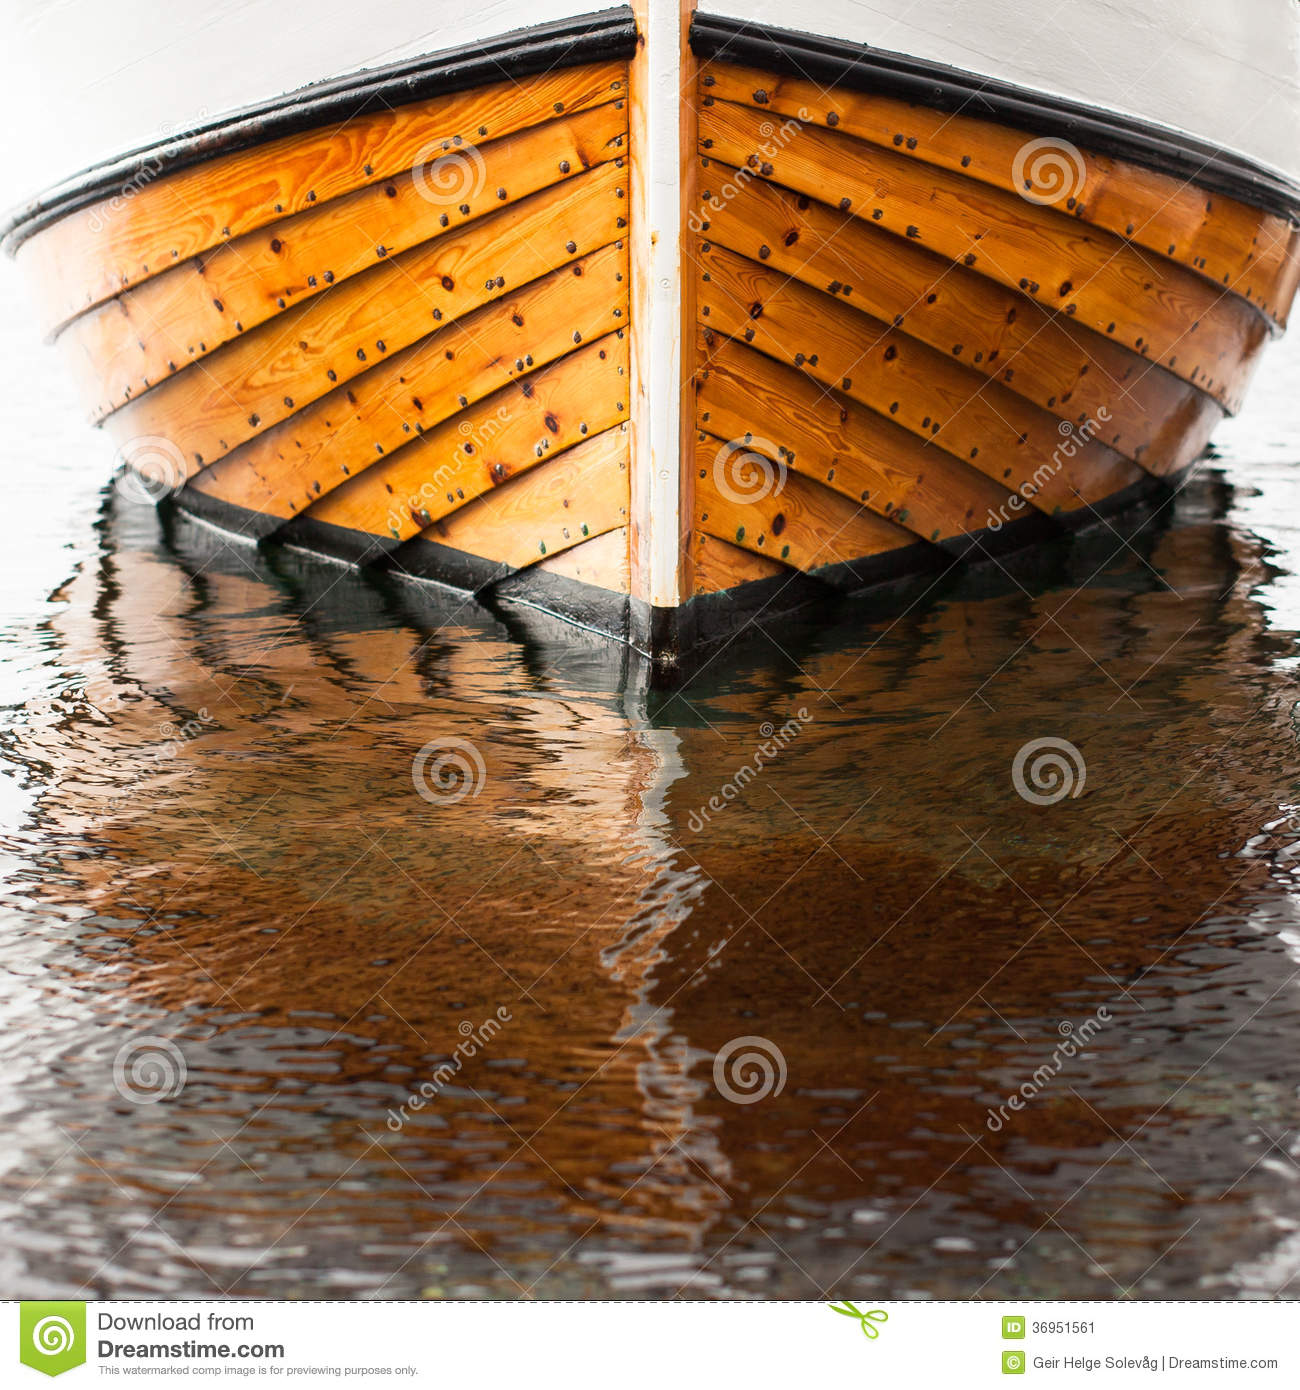 Traditional Wooden Fisher Boat From Norway Stock Image - Image: 36951561